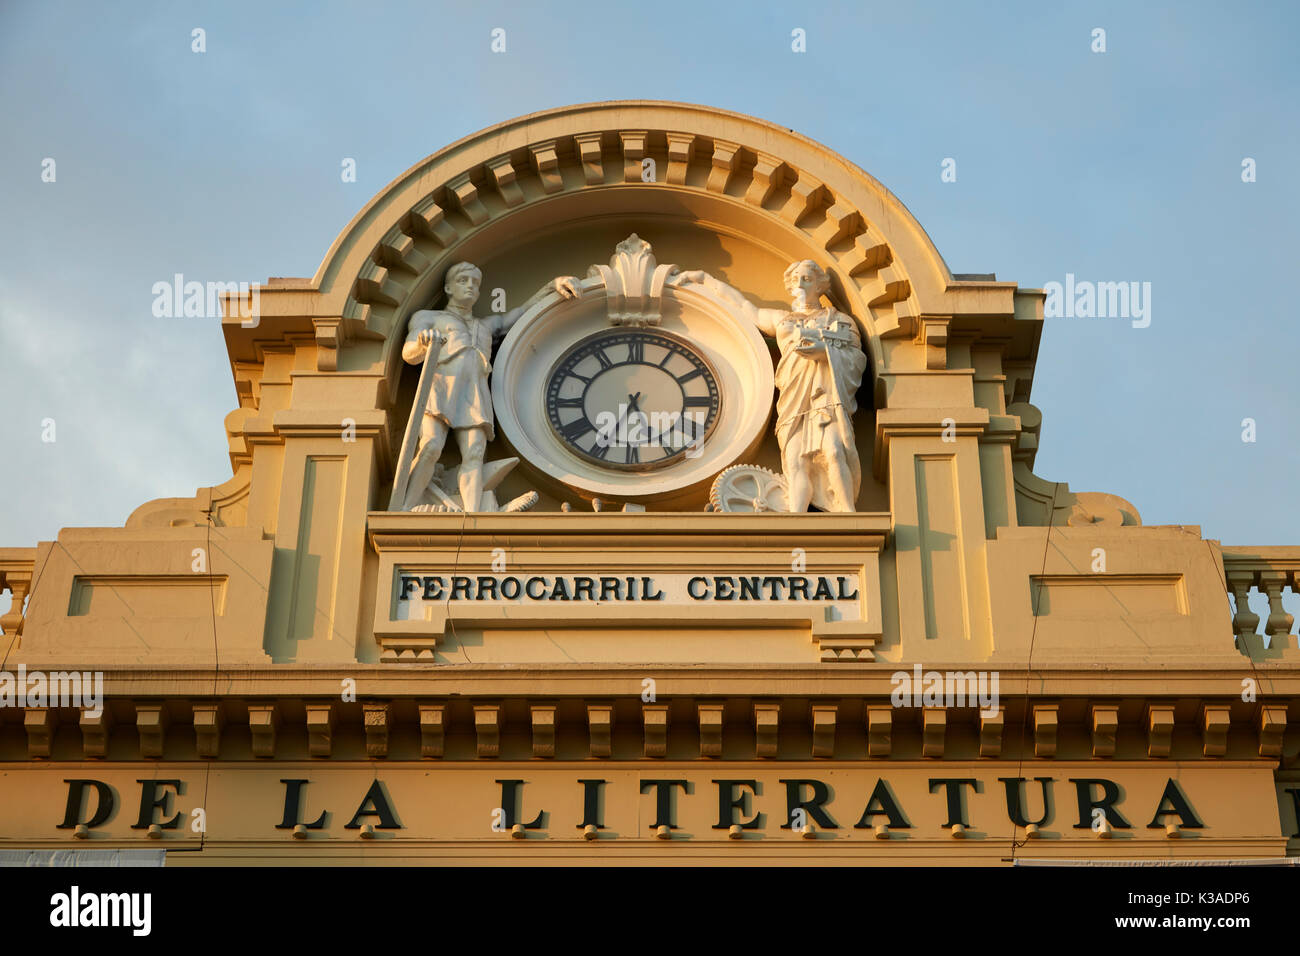 Clock tower on House of Peruvian Literature (formerly Railway Station), Historic centre of Lima (World Heritage Site), Peru, South America - Stock Image